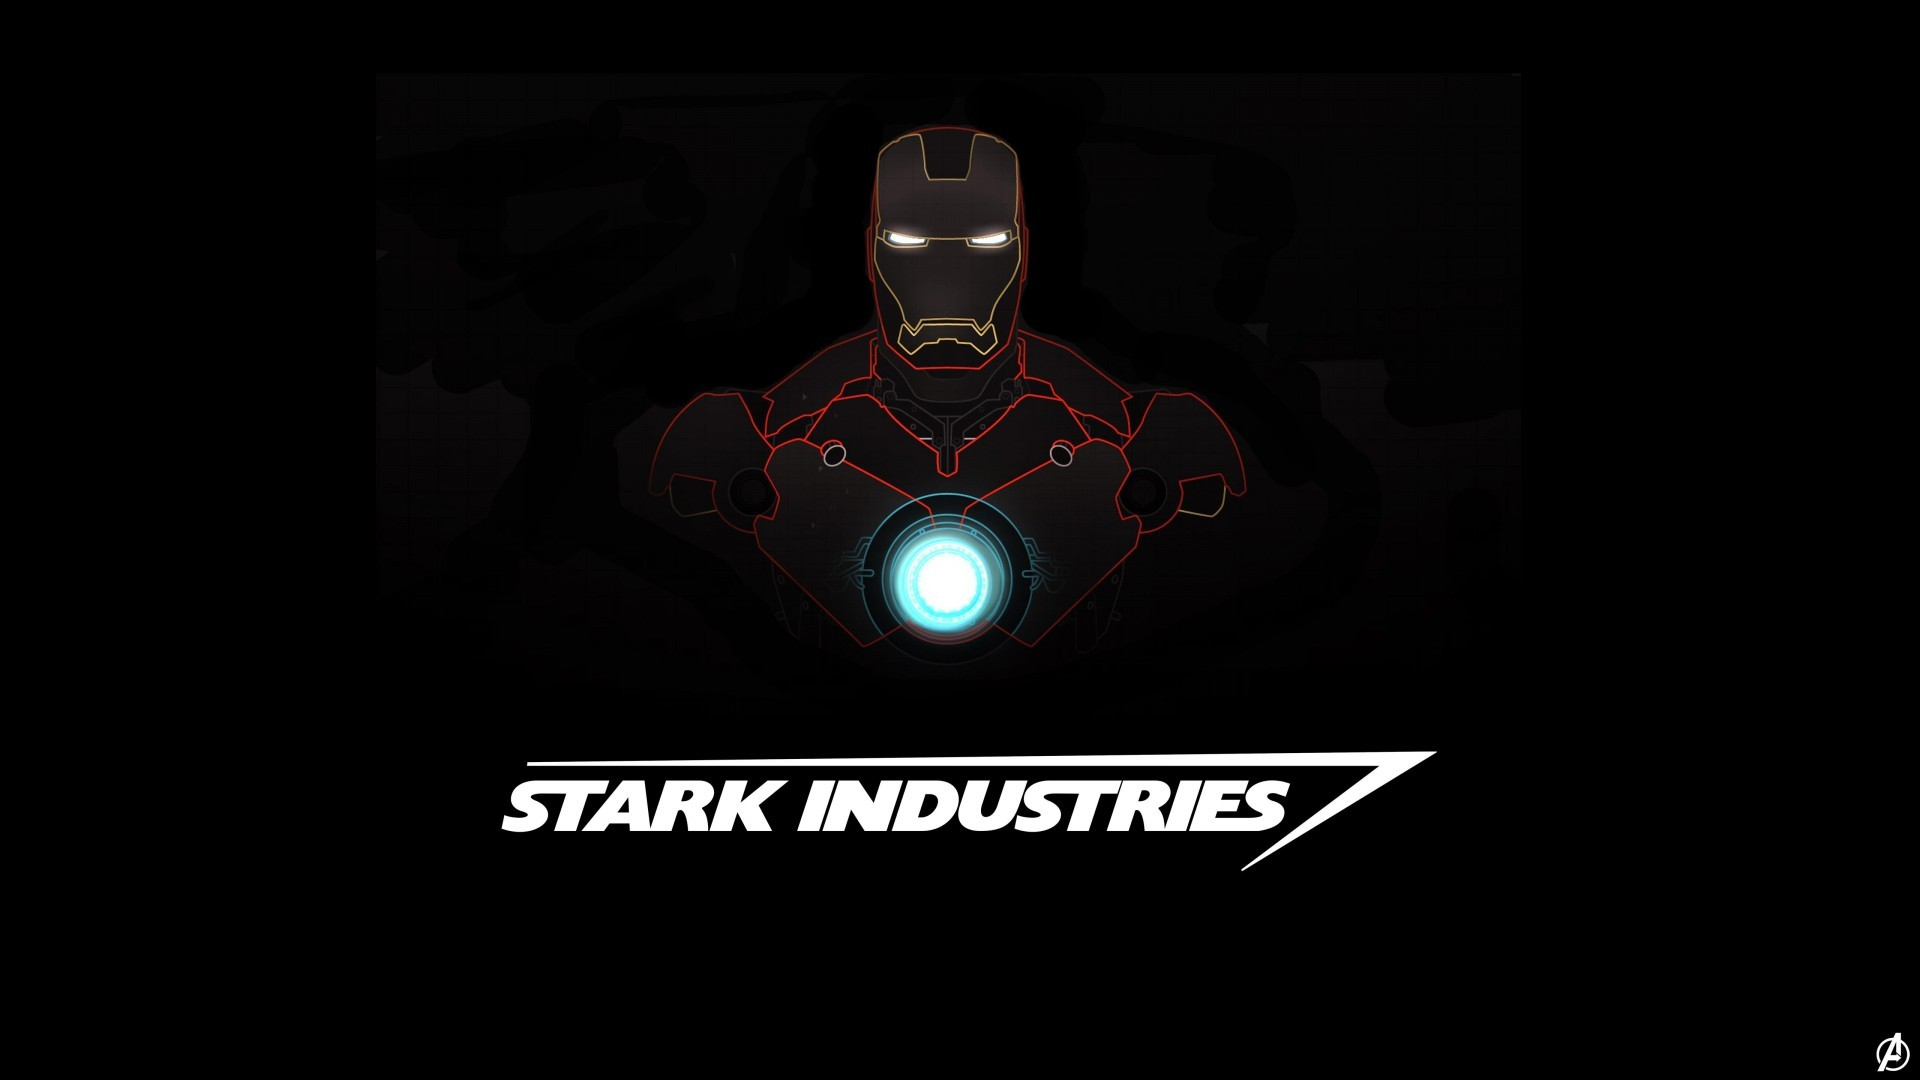 1920x1080 Iron Man Wallpapers For Mobile Phones - The Best Image Wallpaper 2017 ...